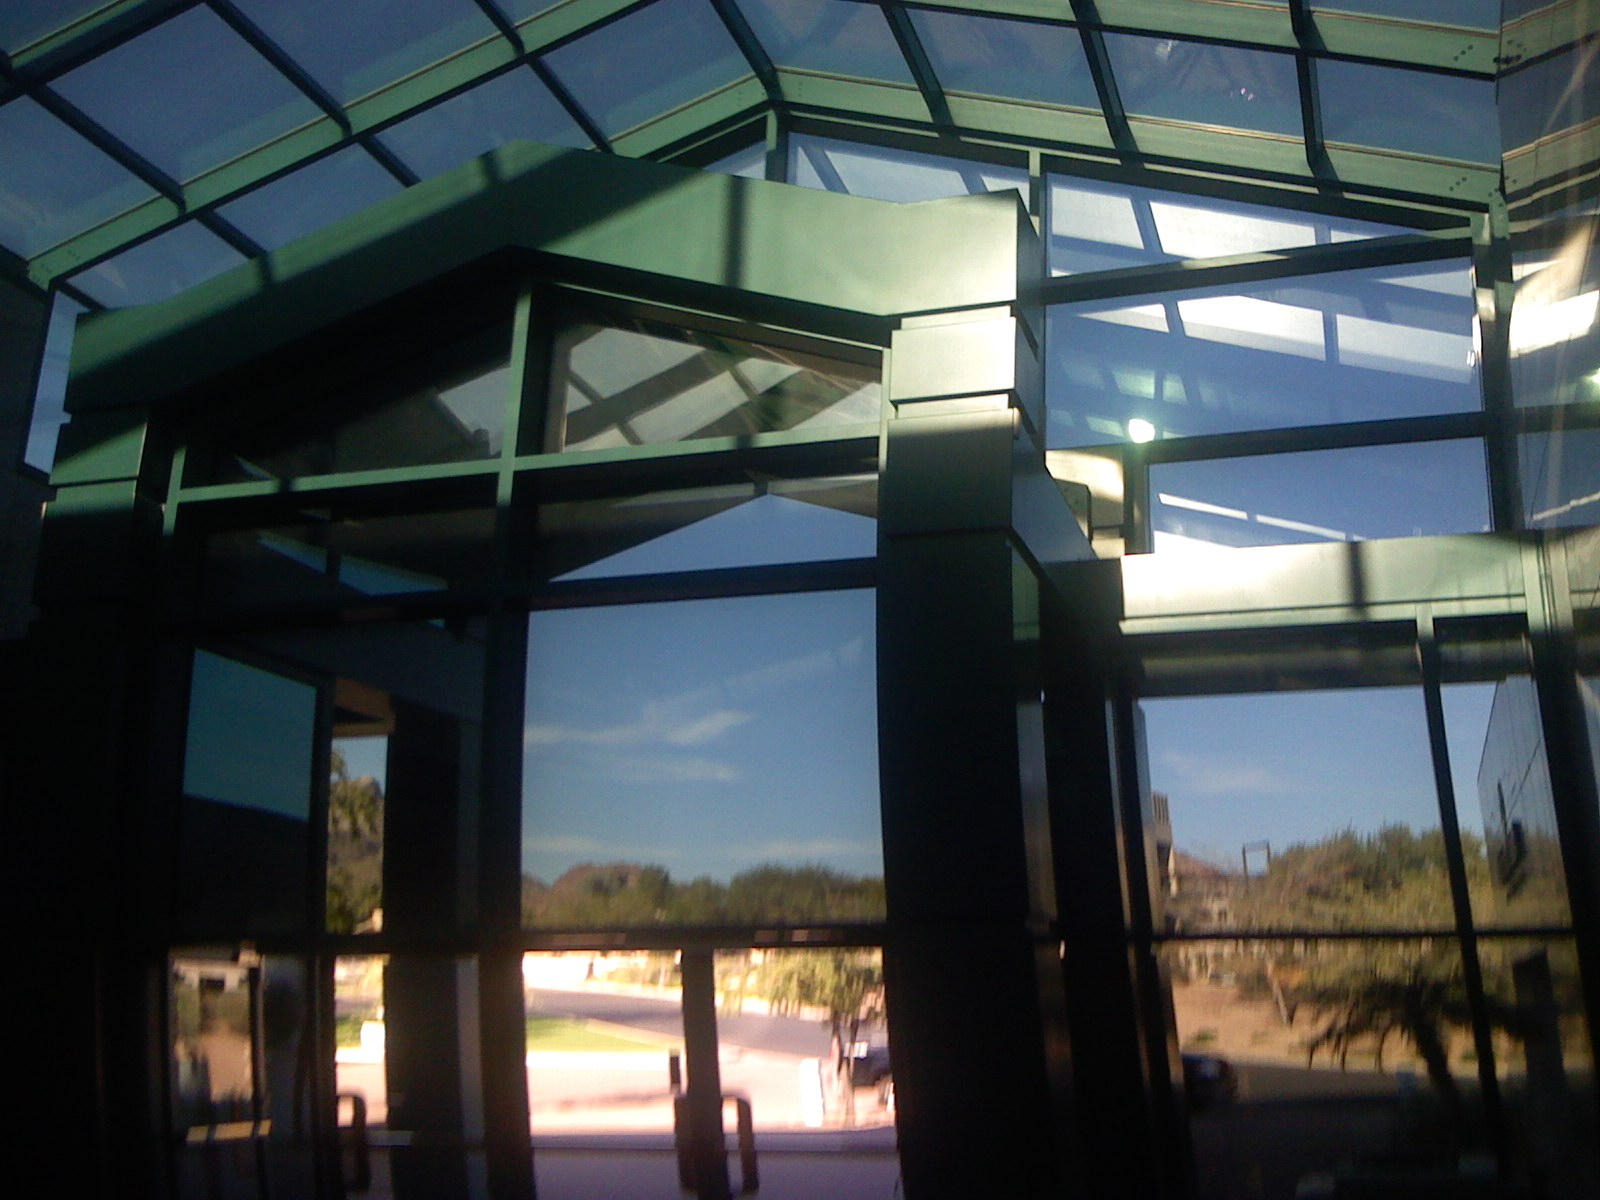 Phoenix arizona commercial window cleaning 3 5 2015 for Commercial windows